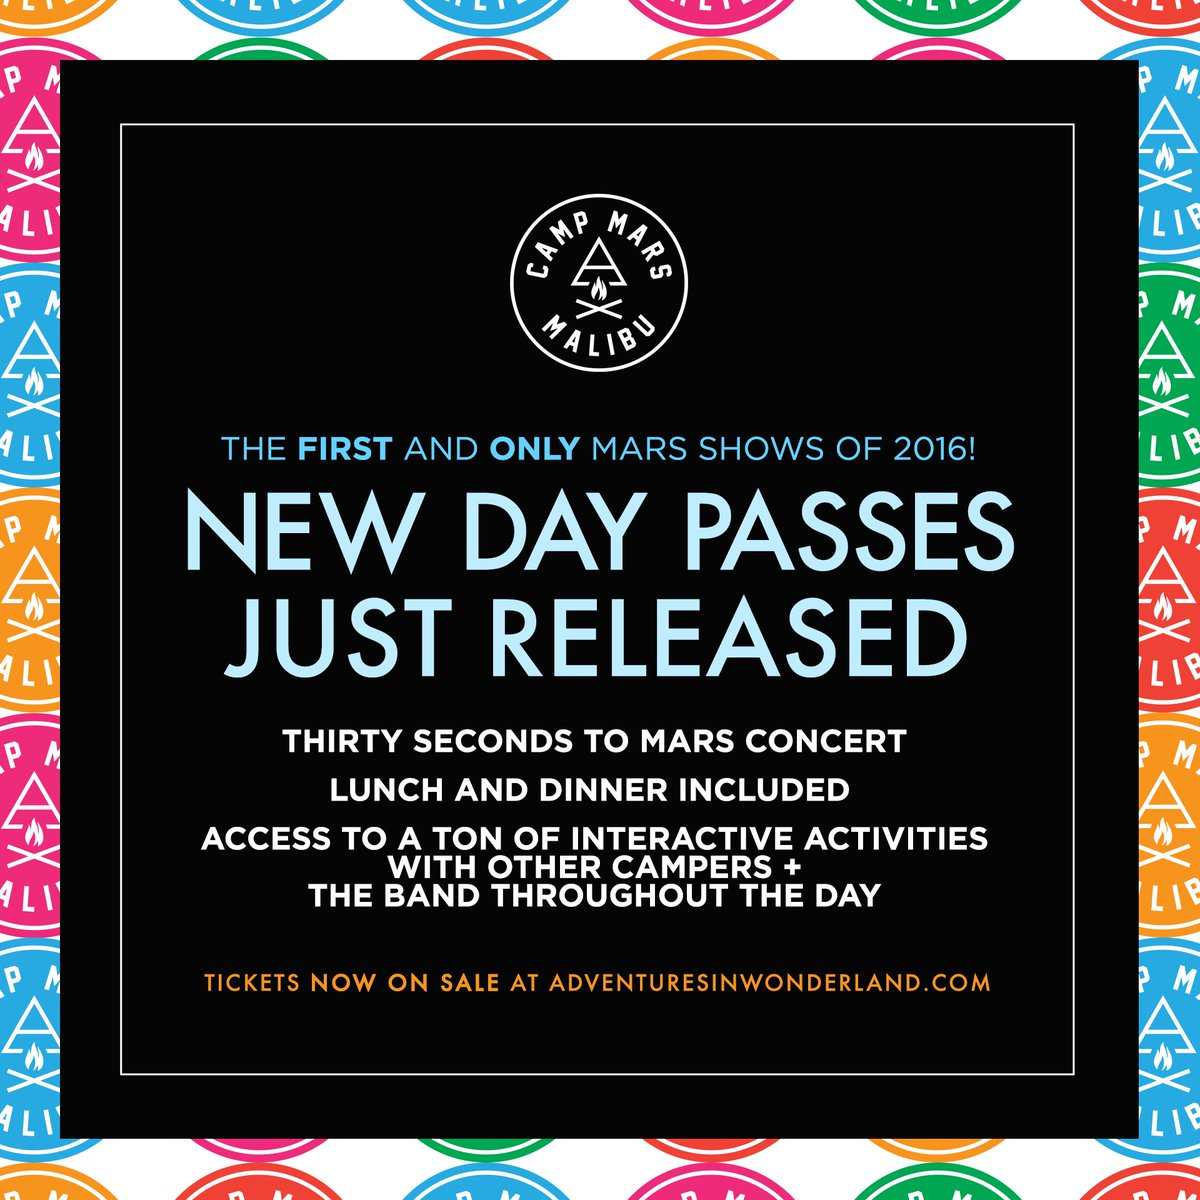 RT @30SECONDSTOMARS: ⚡️ DUE TO POPULAR DEMAND! New Individual #CampMars Day Passes NOW AVAILABLE: https://t.co/pefBVypx7J https://t.co/WdOv…